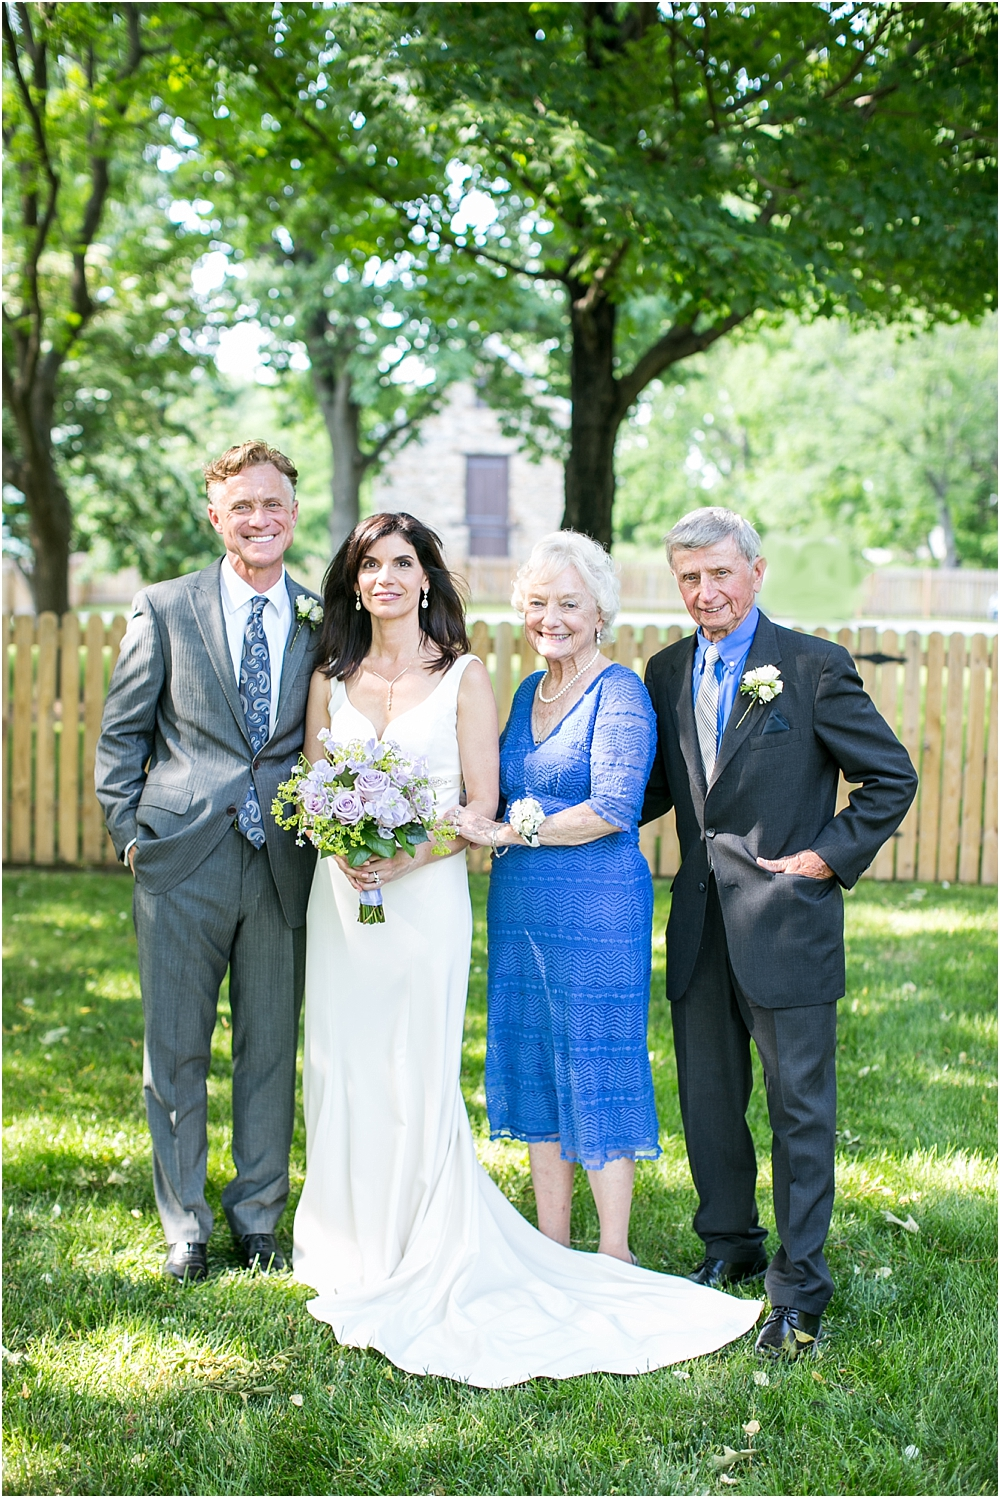 waverly mansion weddings living radiant photography rizzi dick photos_0040.jpg